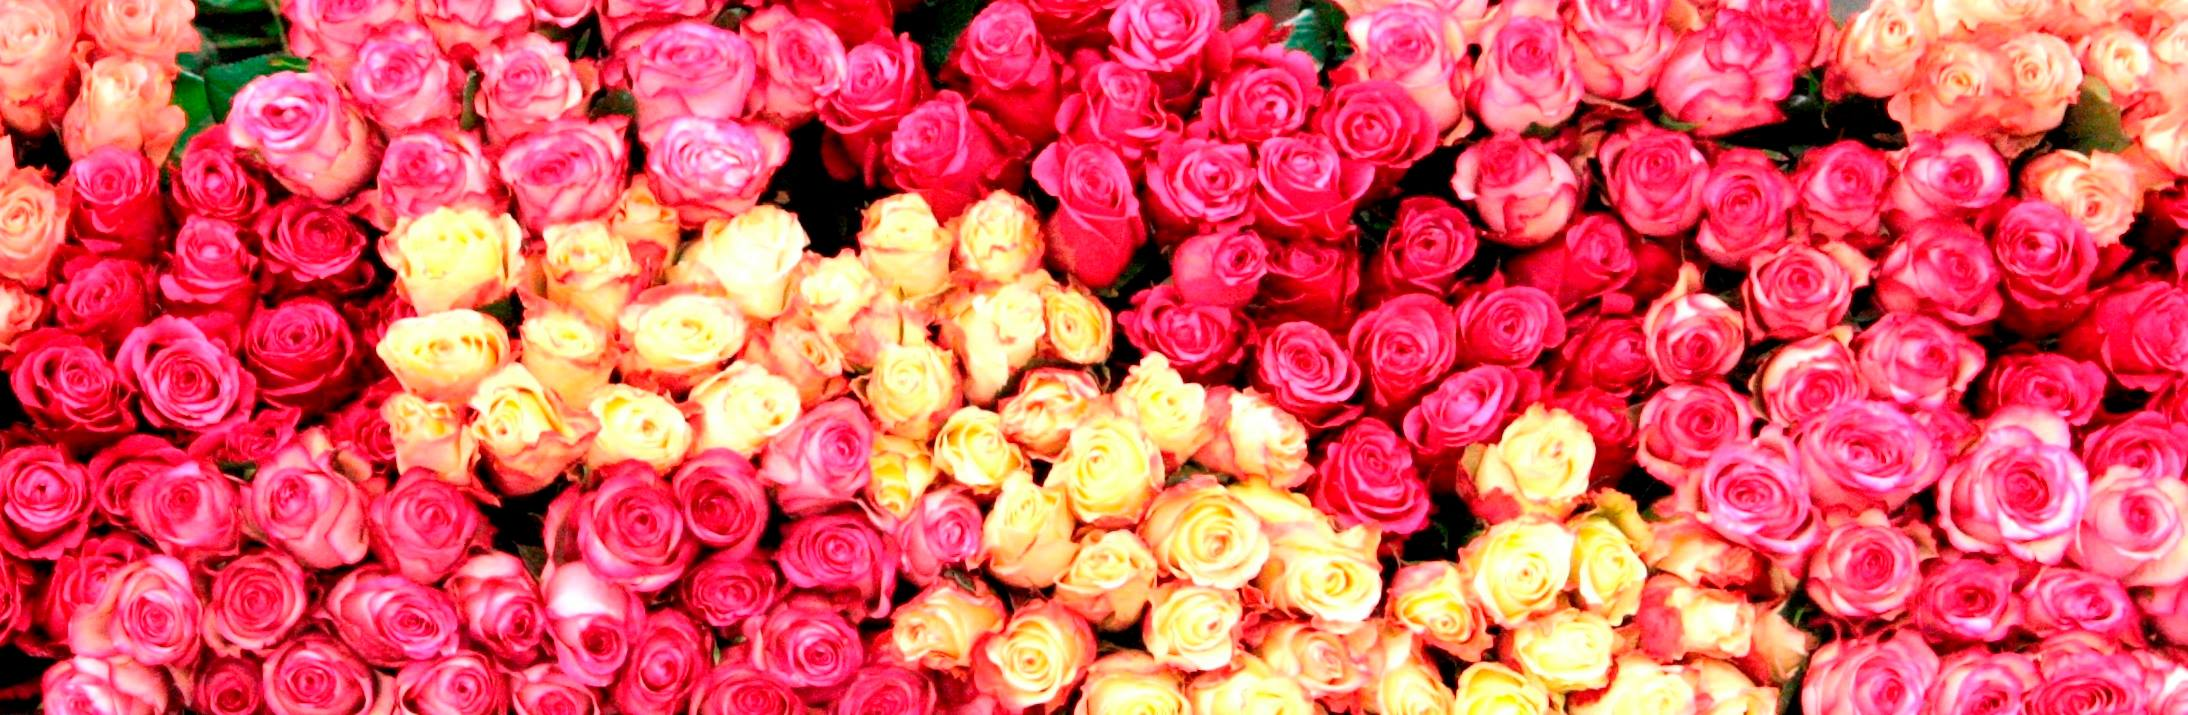 Roses! Photo from LA Original Flower Market Facebook